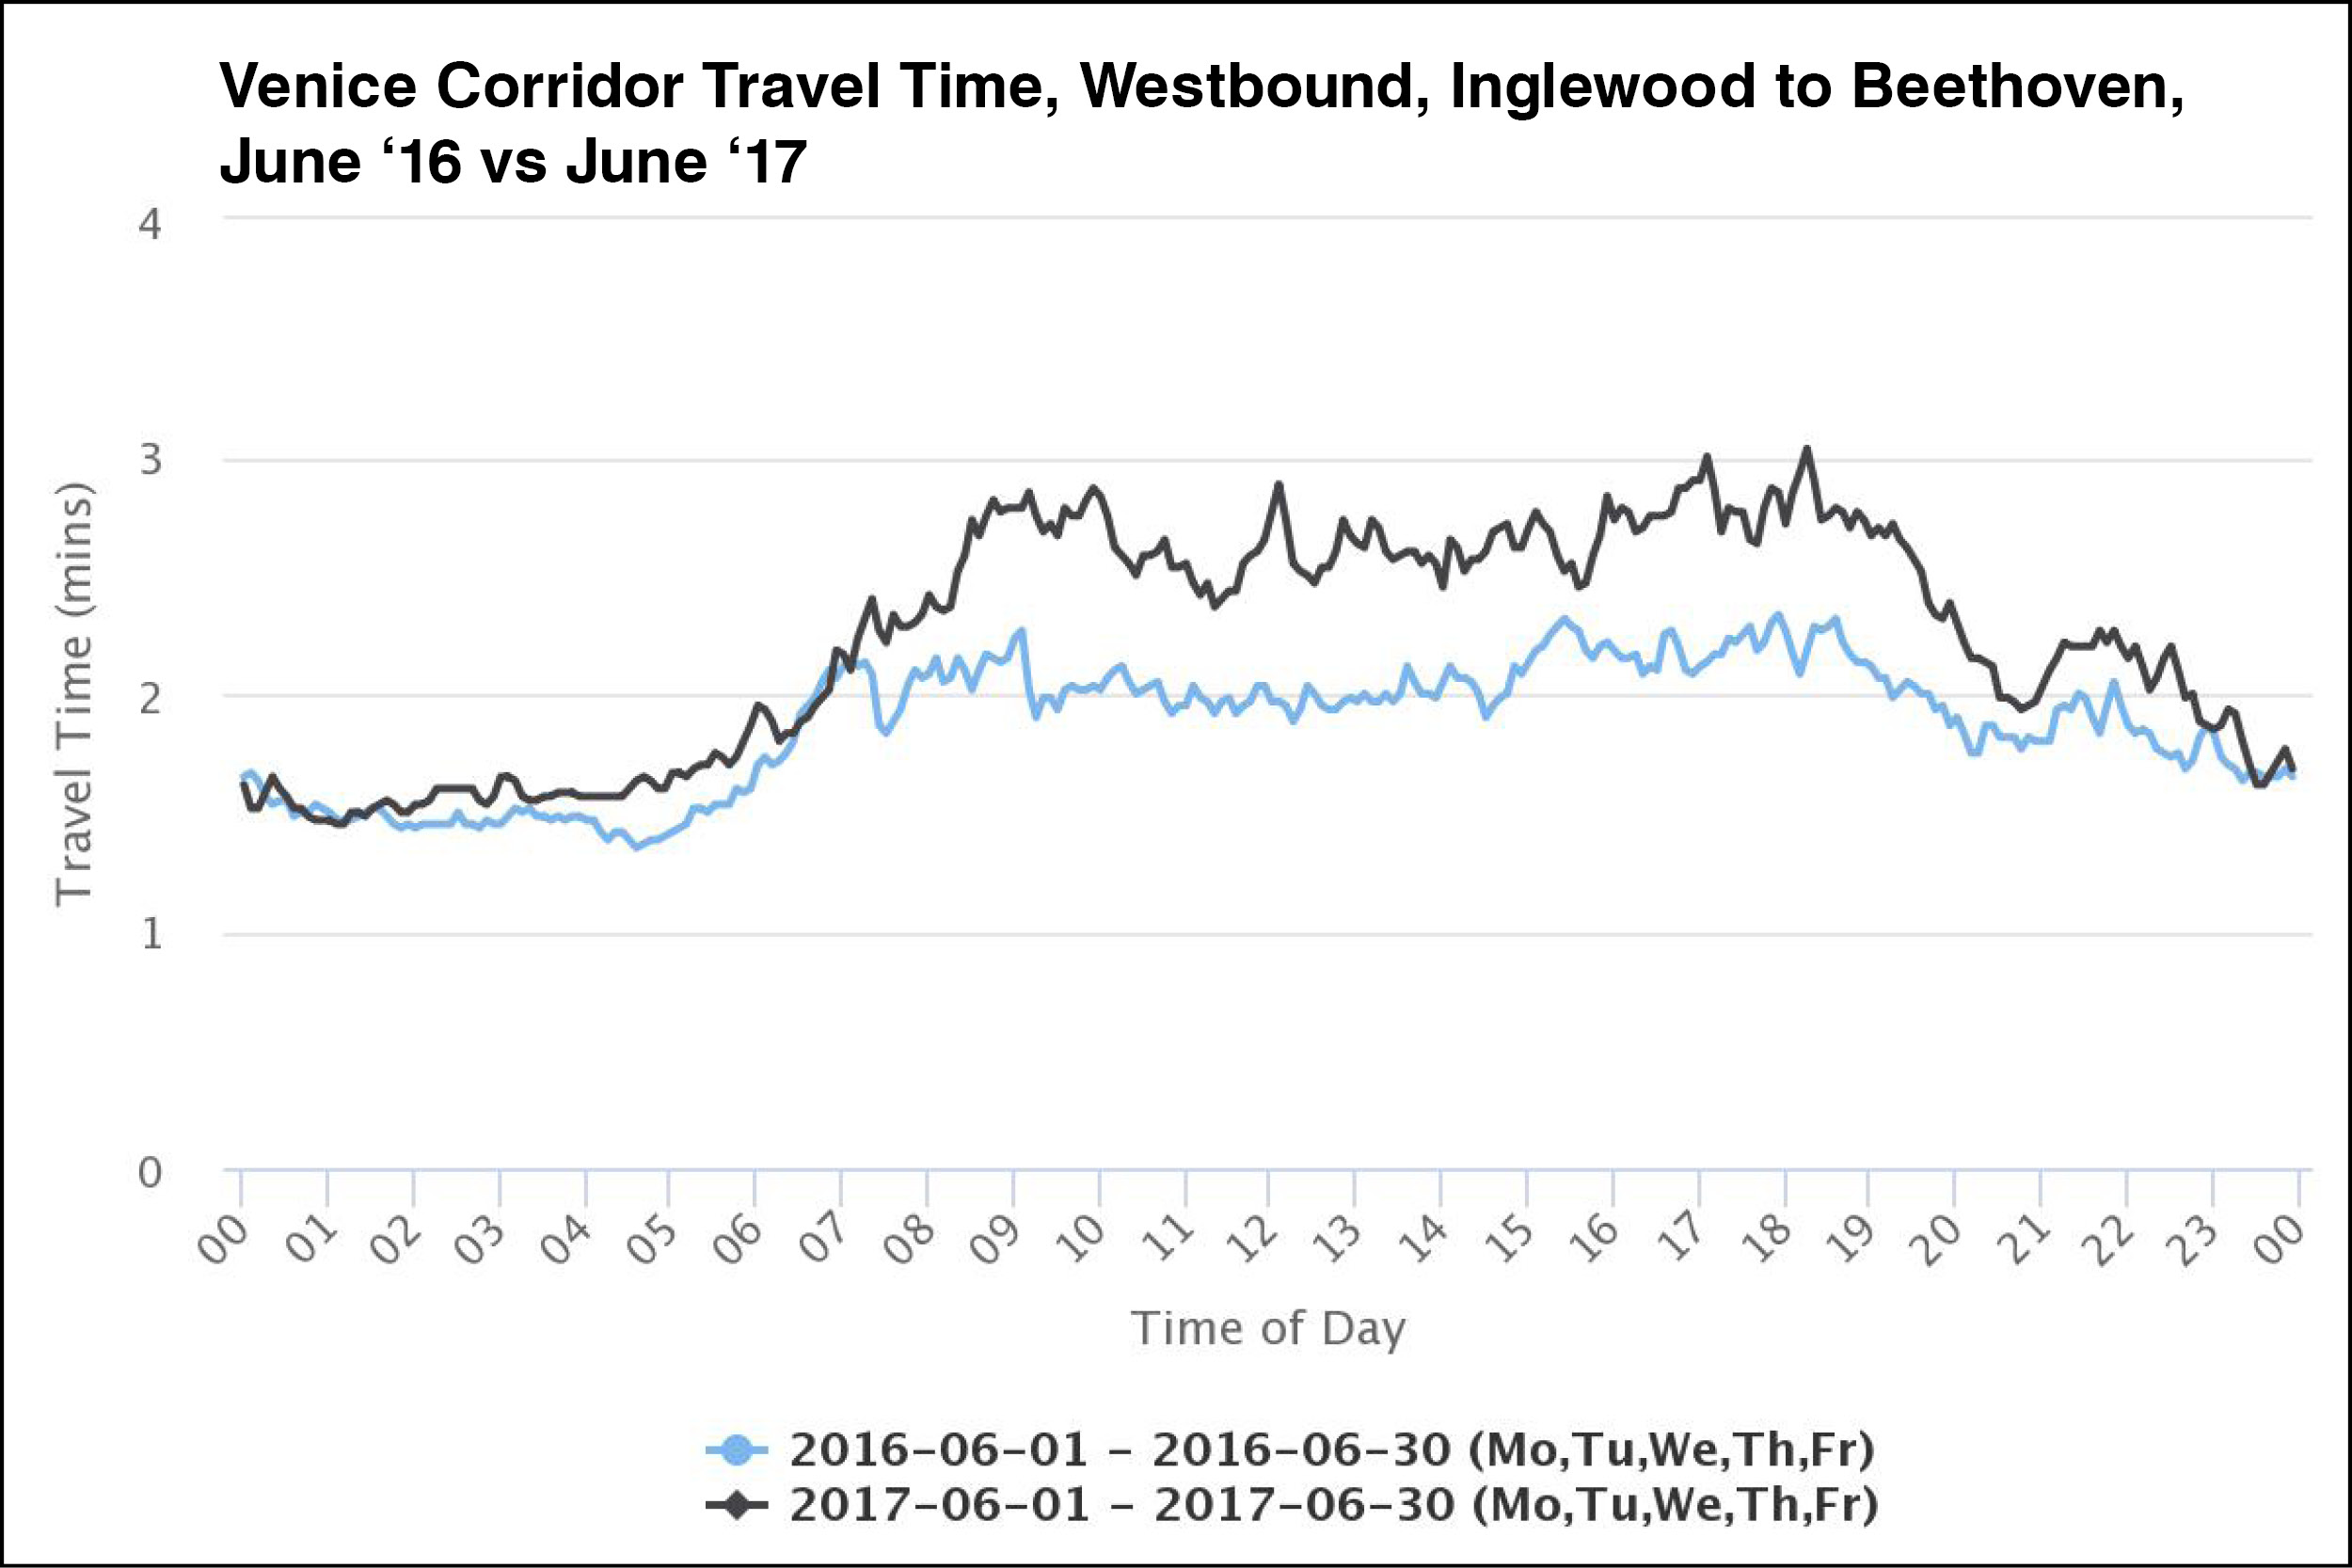 June 2017 travel times in the westbound direction were up to 60 seconds higher in the AM rush hour through to the PM rush hour compared to June 2016.